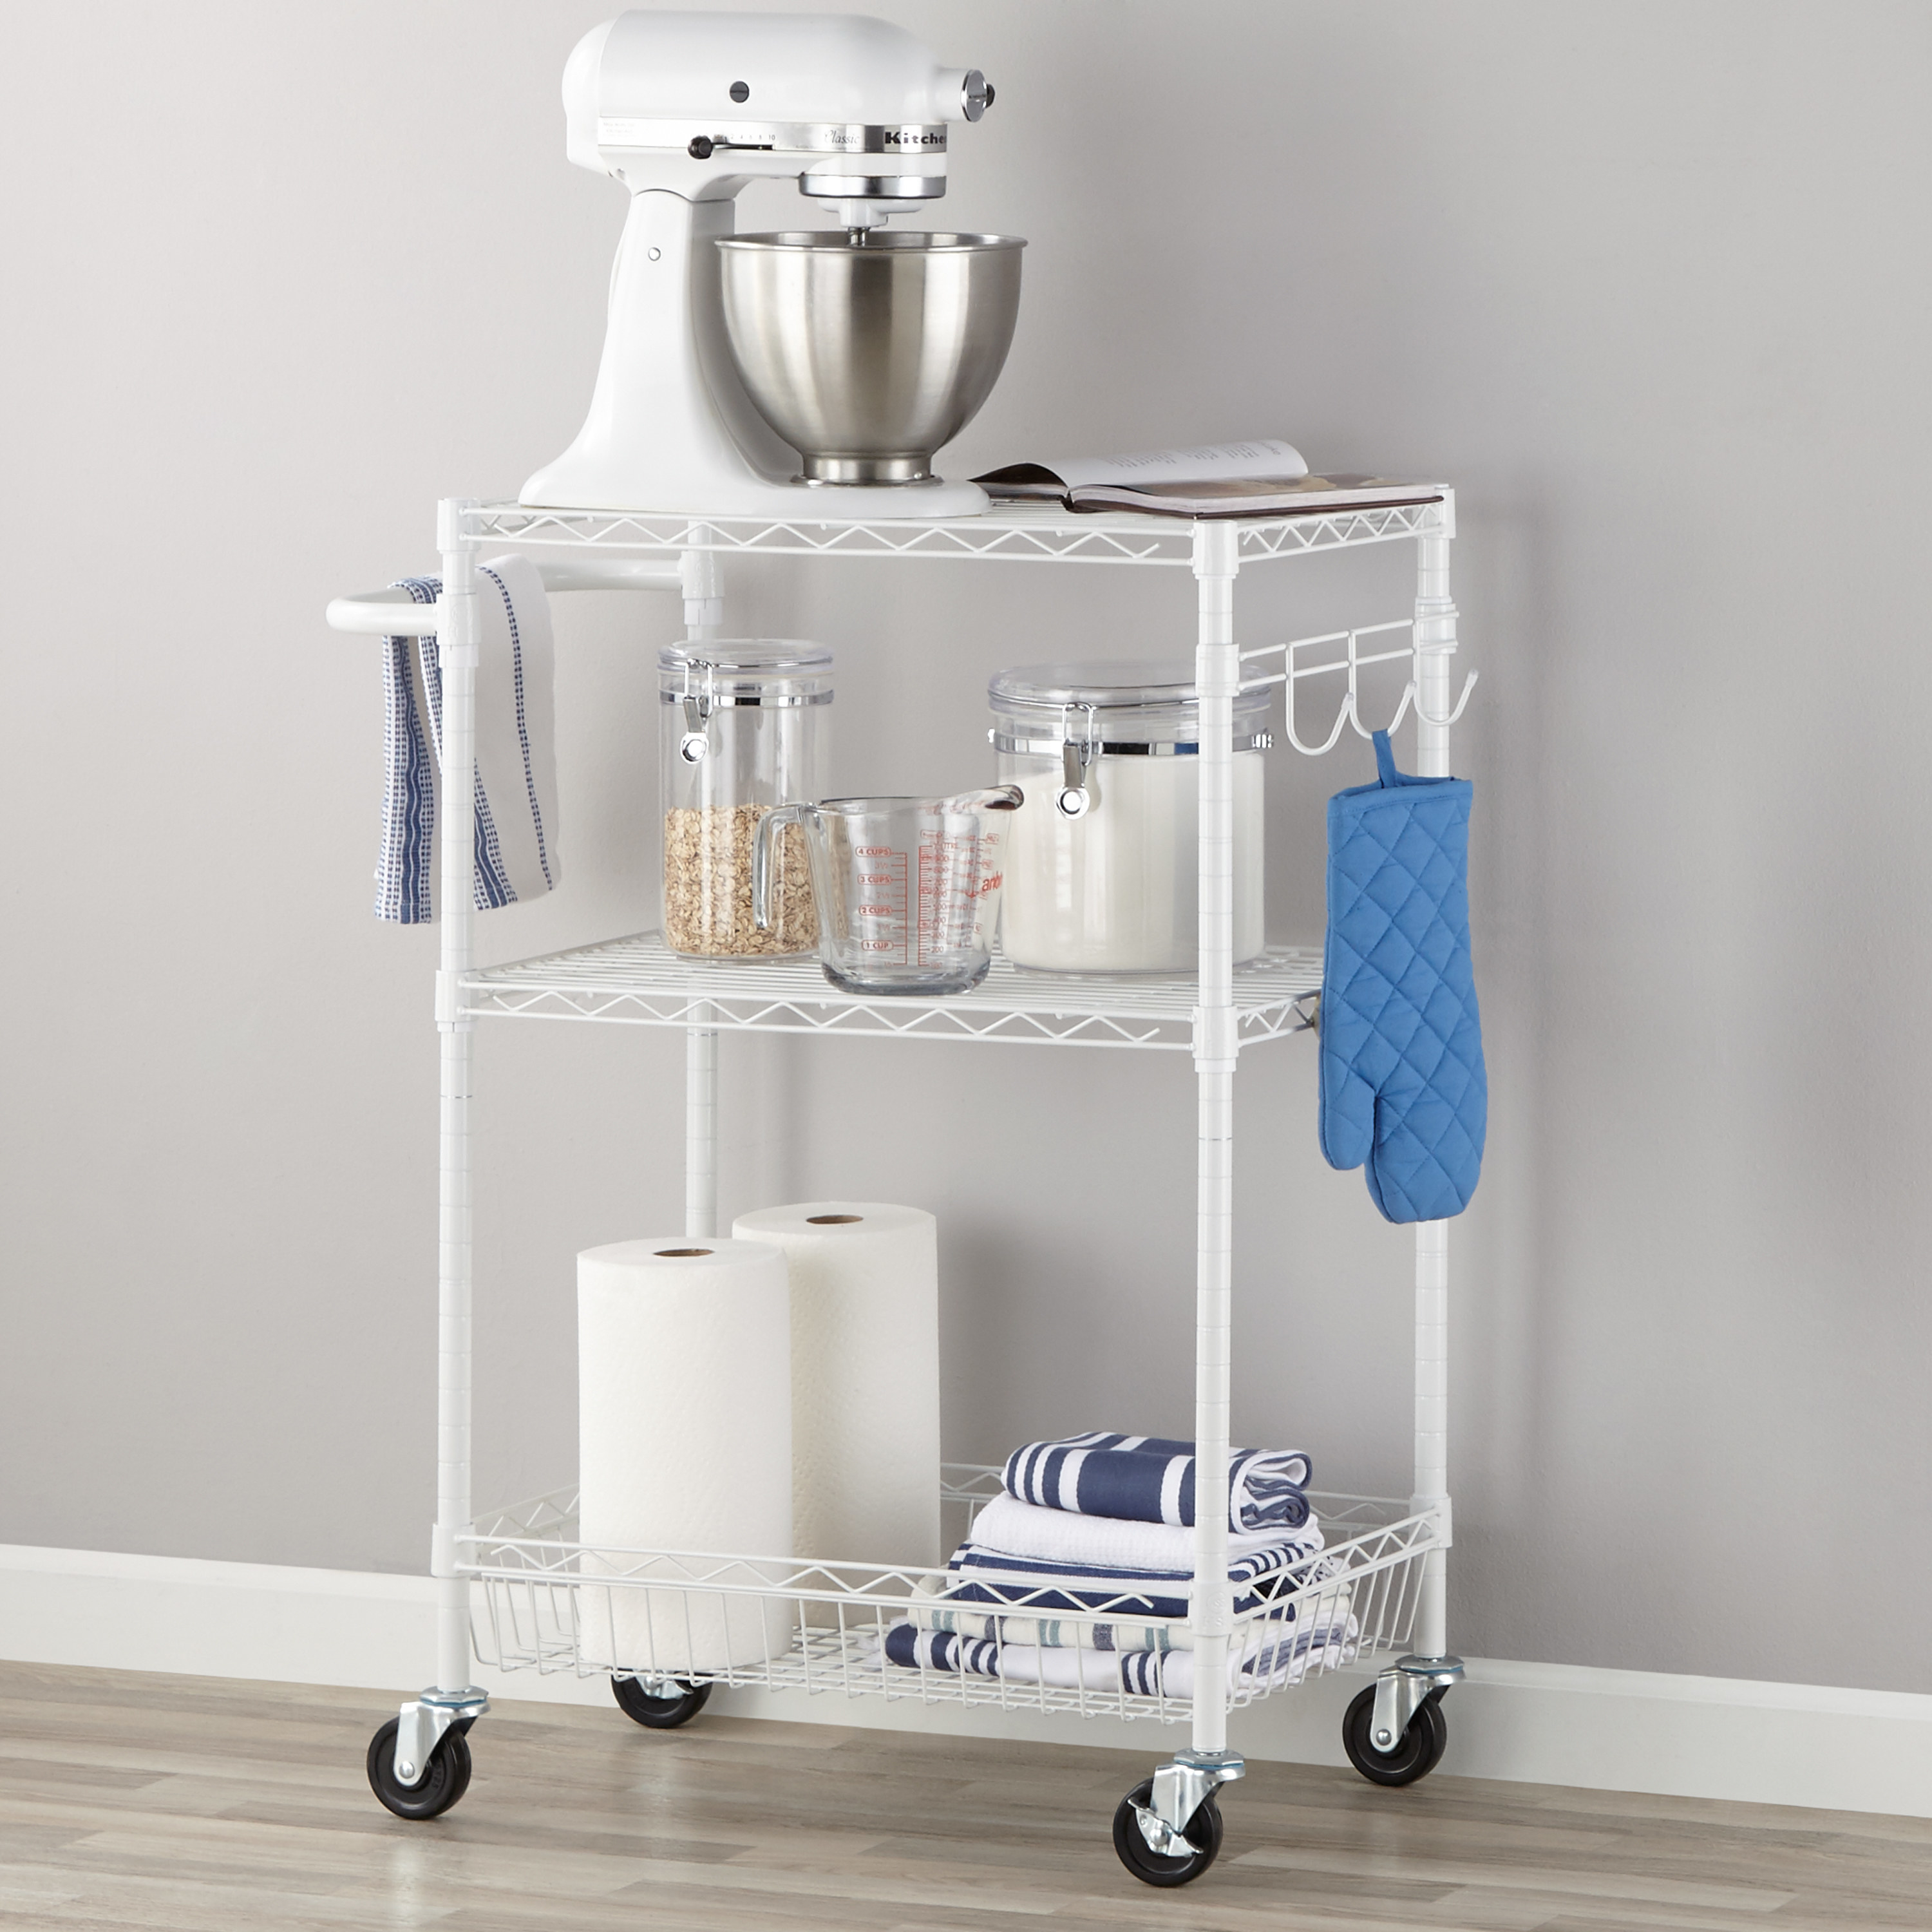 White rolling cart with kitchen supplies on the cart